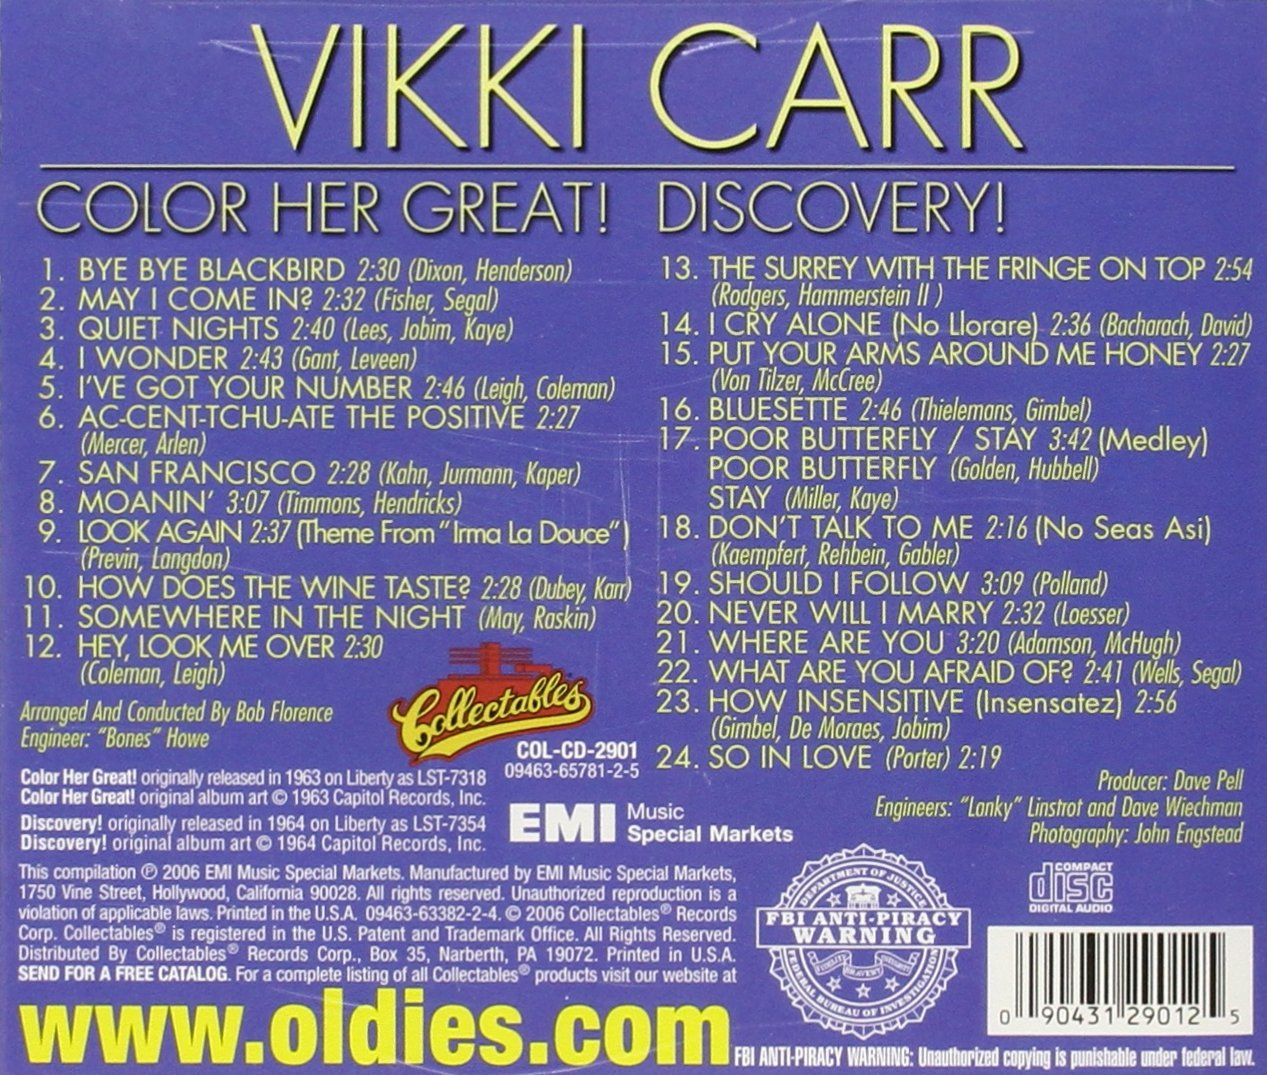 Color Her Great! / Discovery!